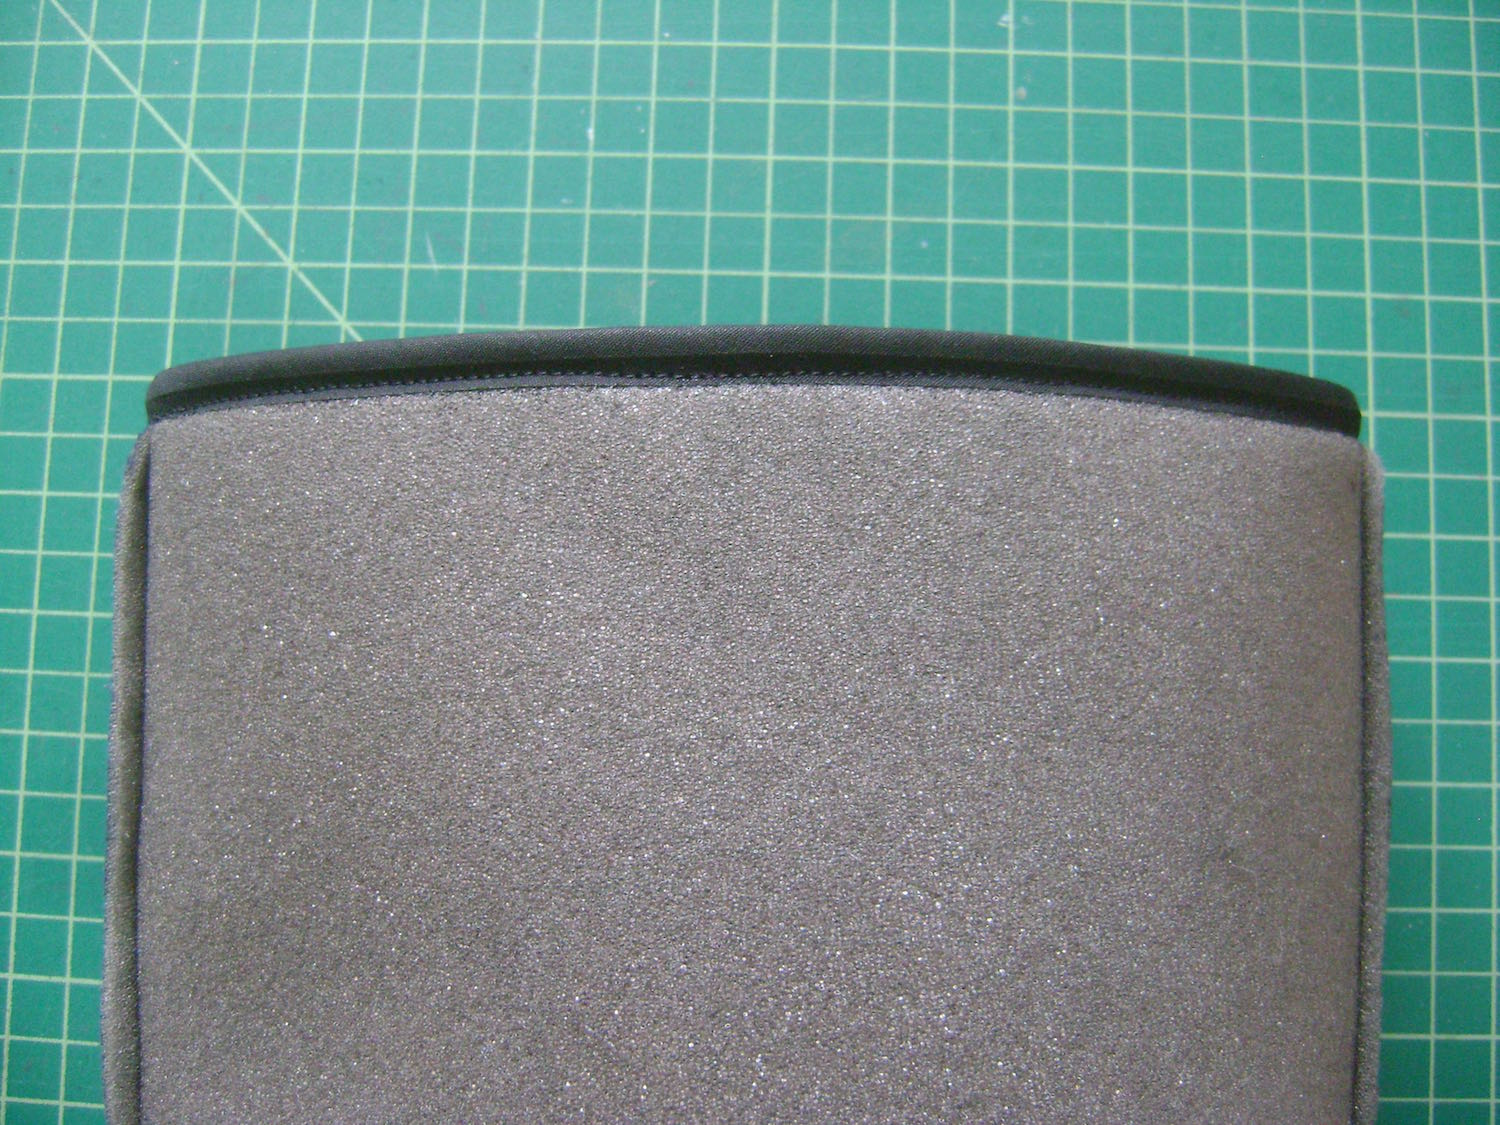 "step 9 - Cut a piece of bias tape to measure 21"".  Sew the ends together.  Encase the top edge of the headliner with bias tape by sewing one edge to the top of the headliner, then folding it over and top stitching the other edge."